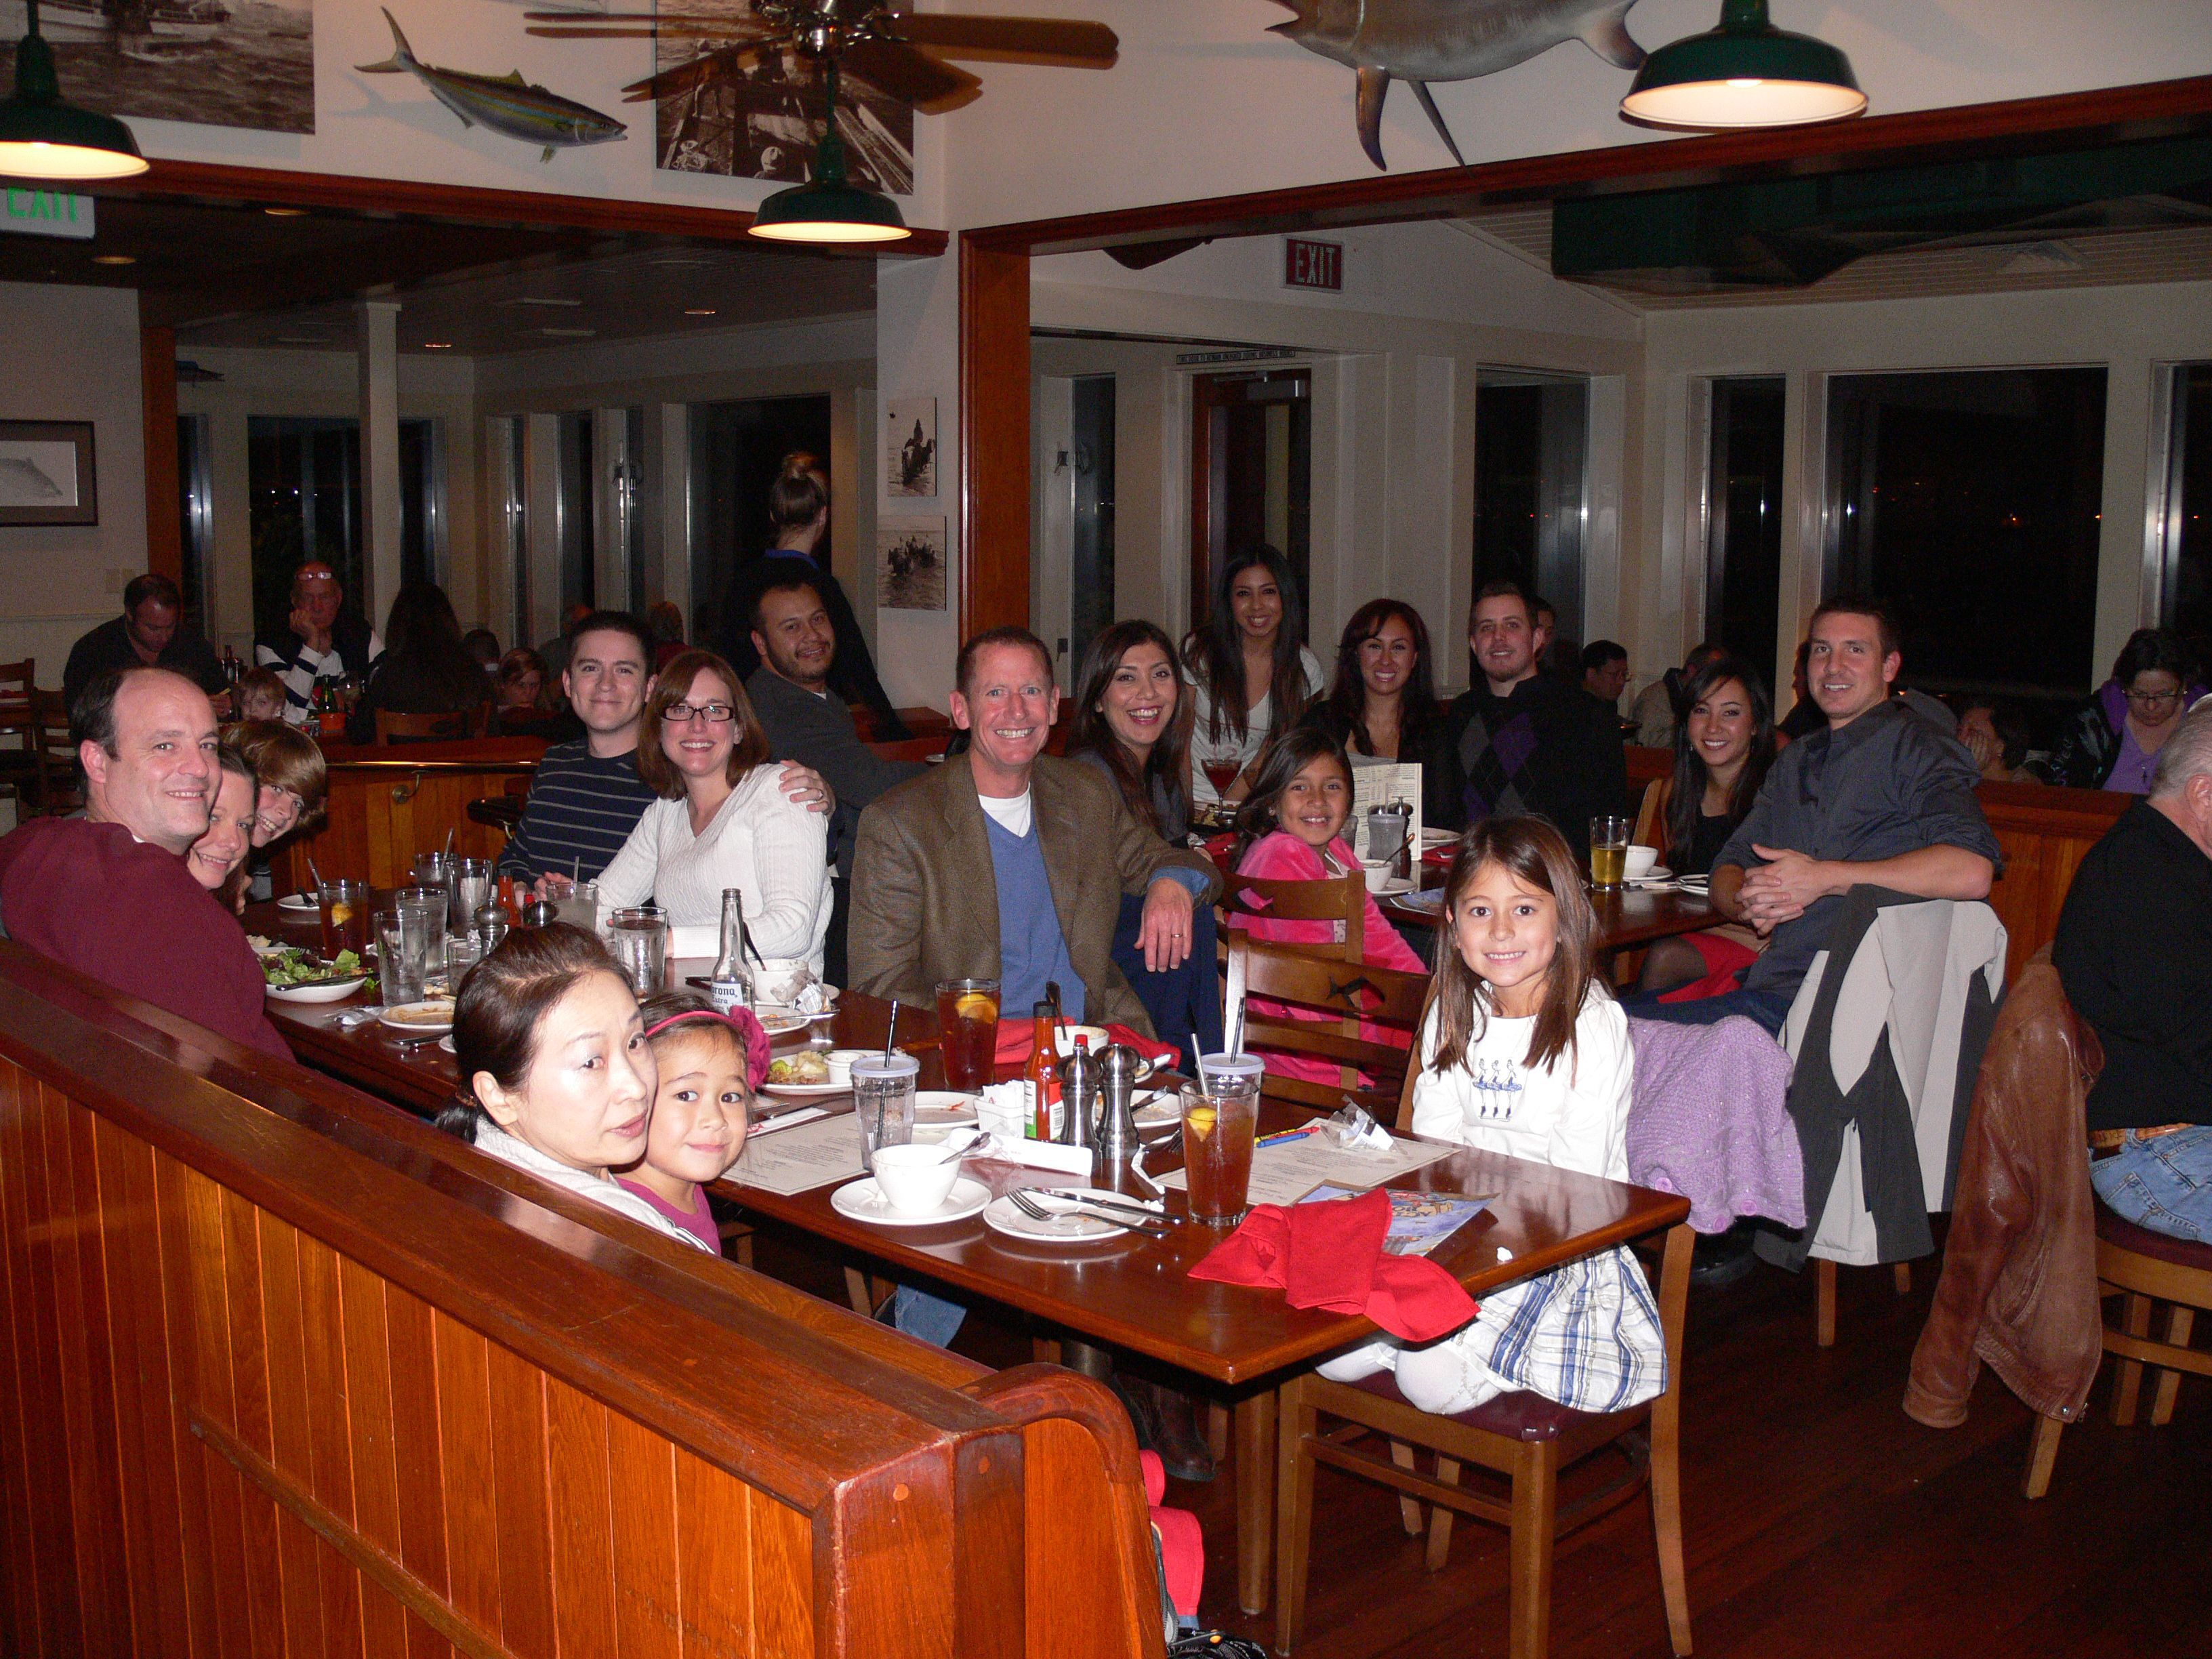 The Turley Law Firm Christmas Party/ Dinner 2012